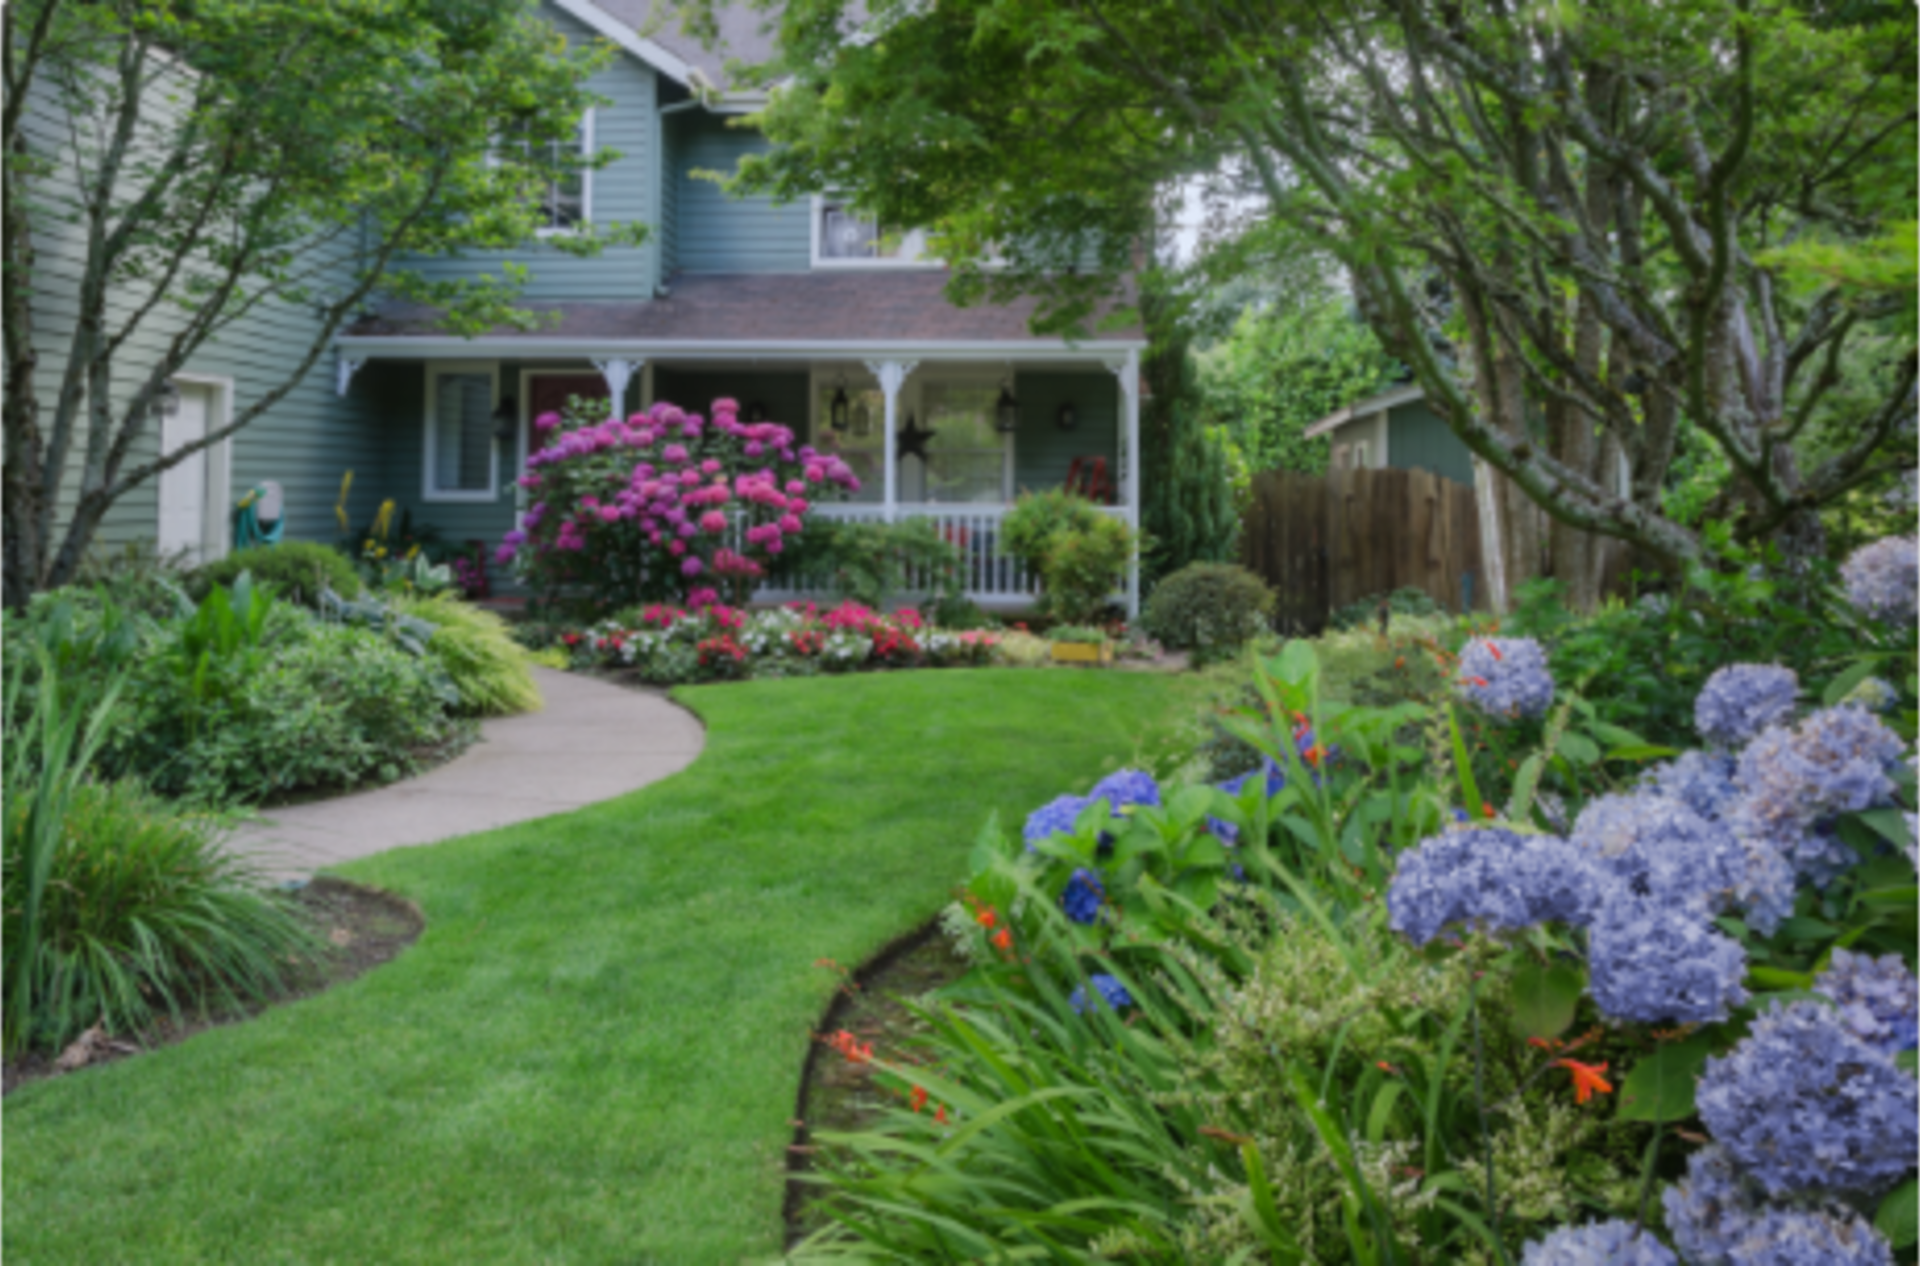 7 Insider Secrets to House Hunting